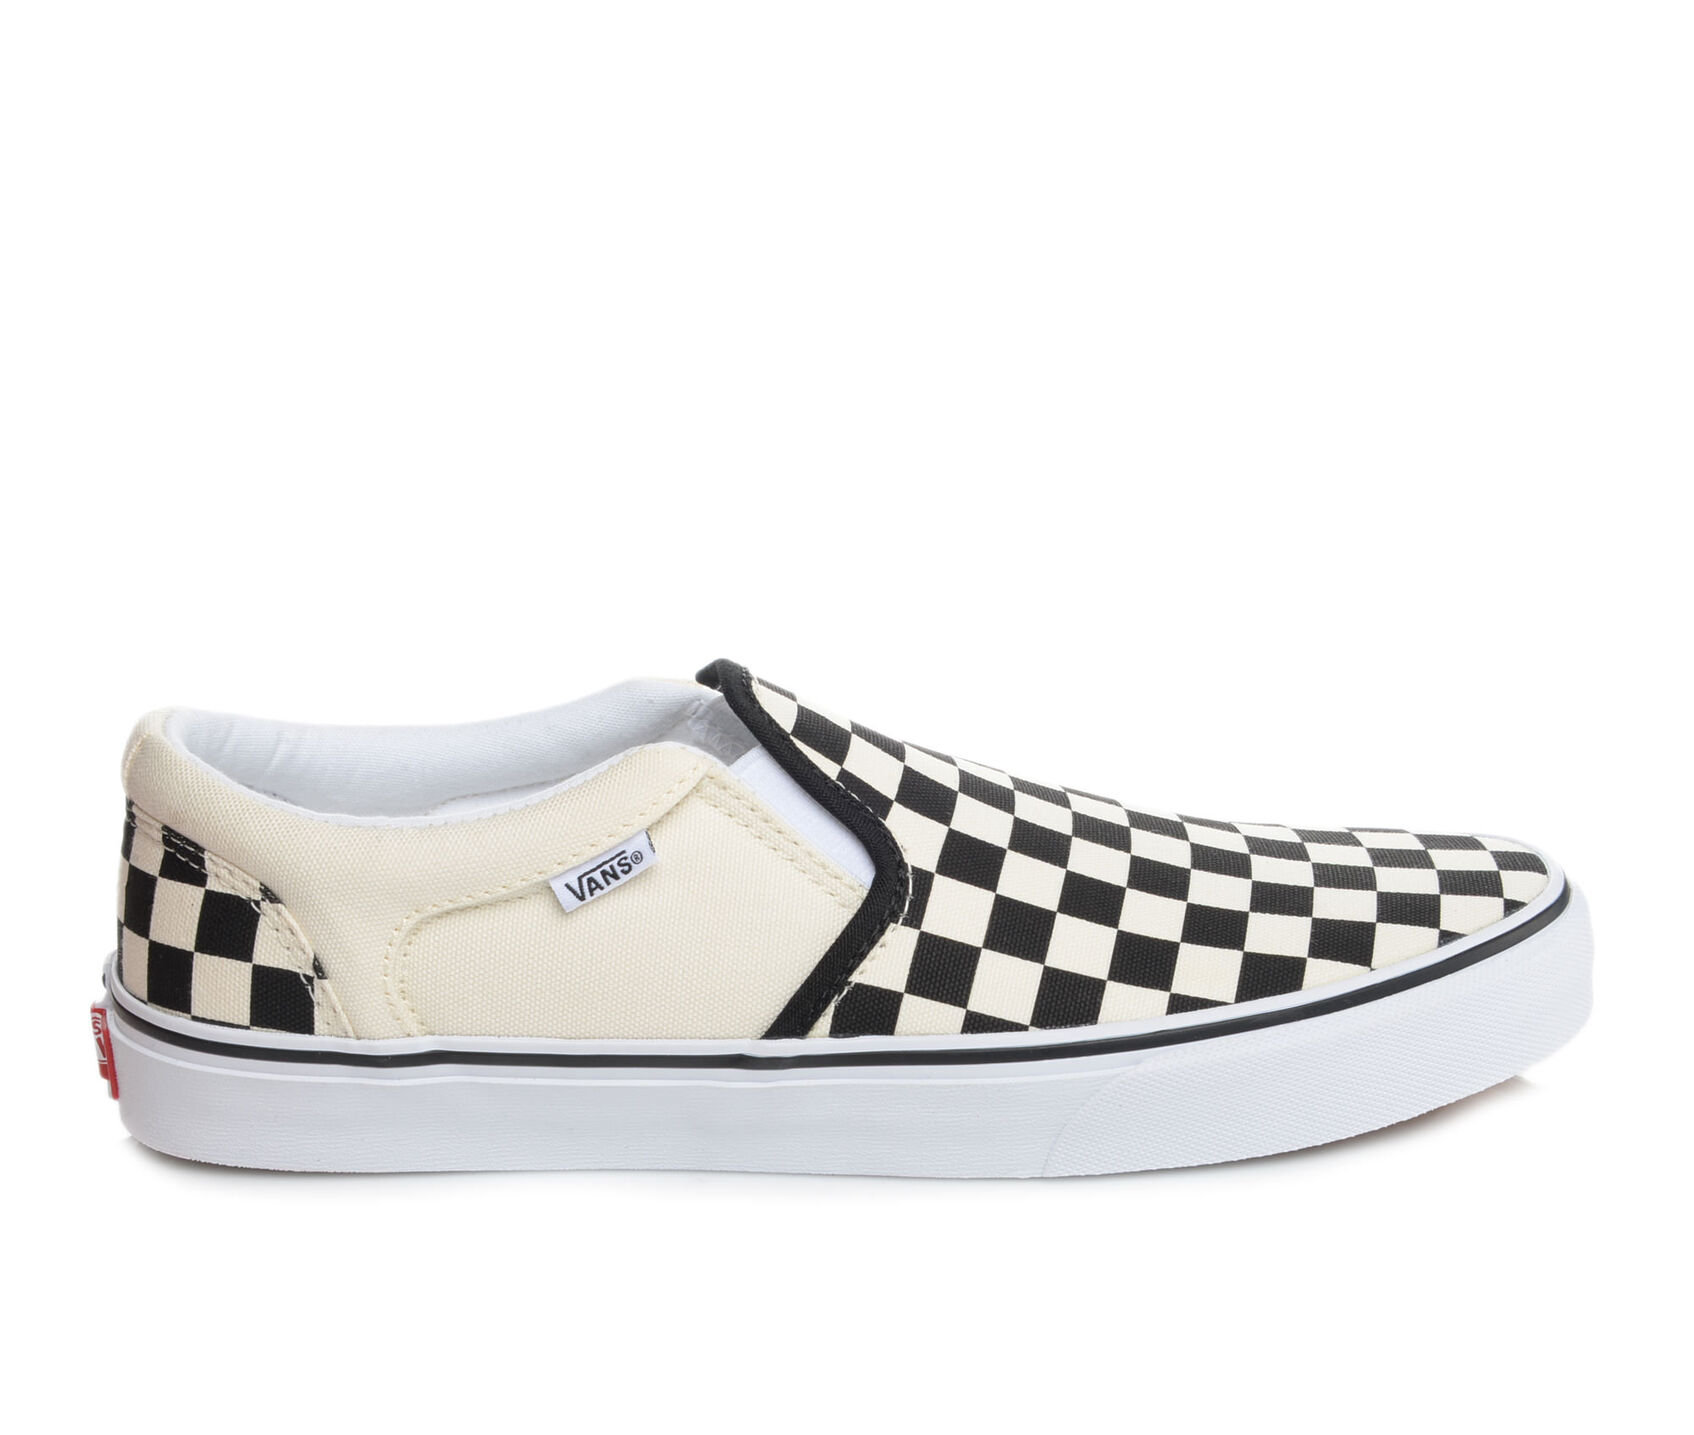 2df8a4dcce ... Vans Asher Slip-On Skate Shoes. Previous